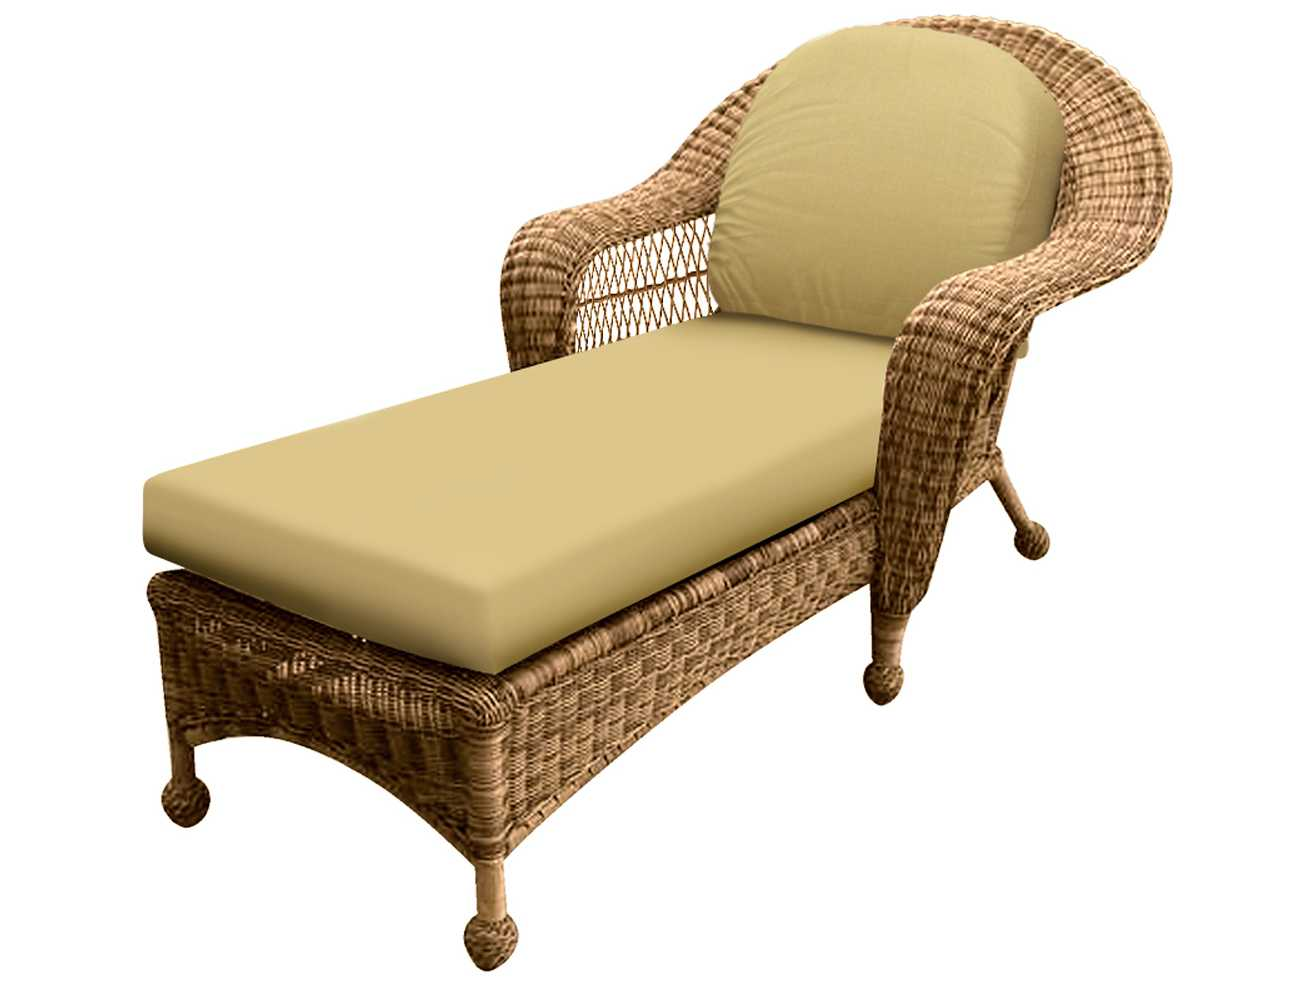 Forever patio catalina wicker chaise lounge in straw round for Catalina chaise lounge